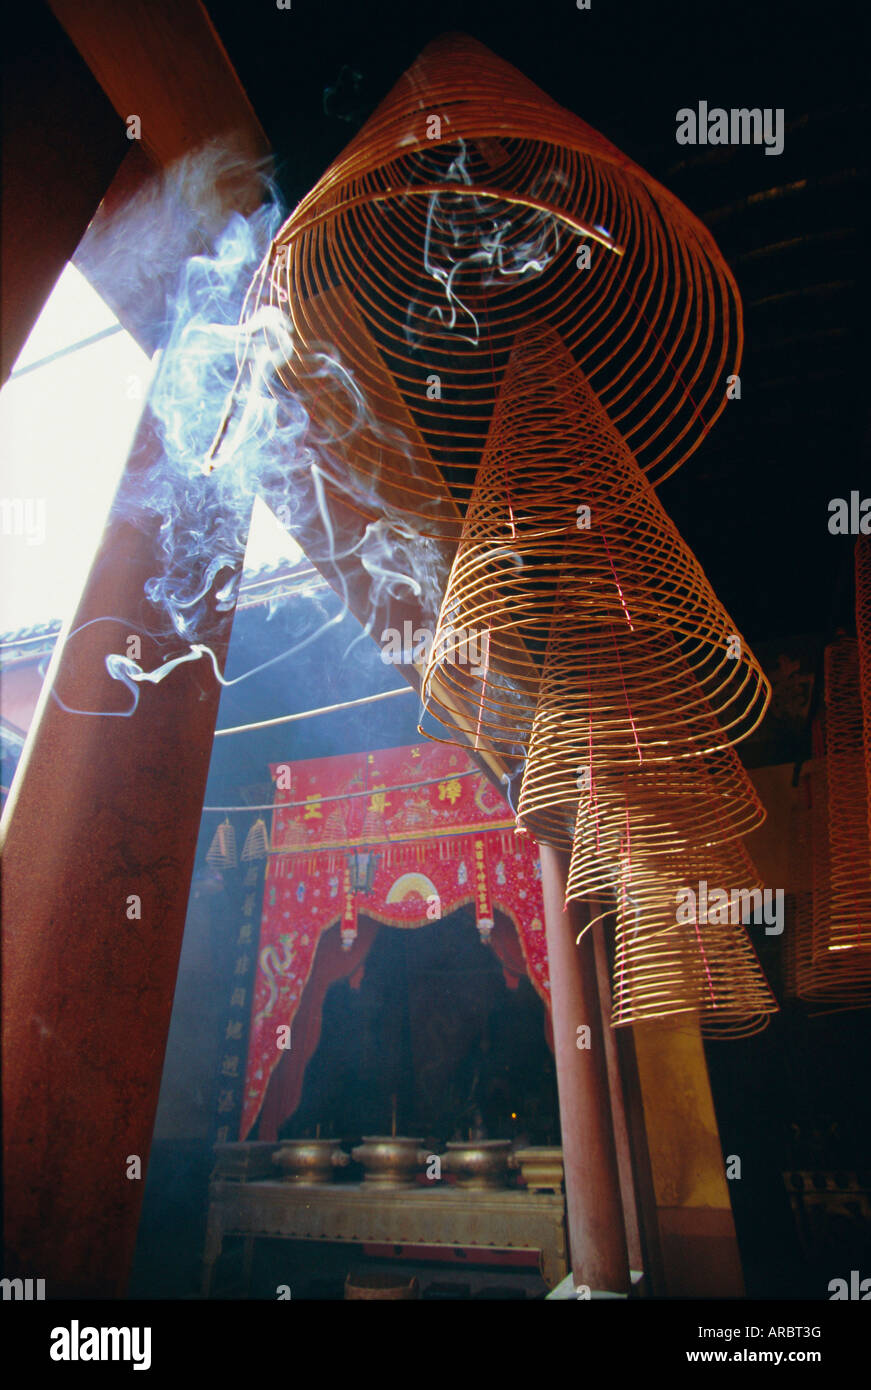 Huge incense spirals which burn for hours, Phung Son Tu Pagoda, Ho Chi Minh City (Saigon), Vietnam - Stock Image